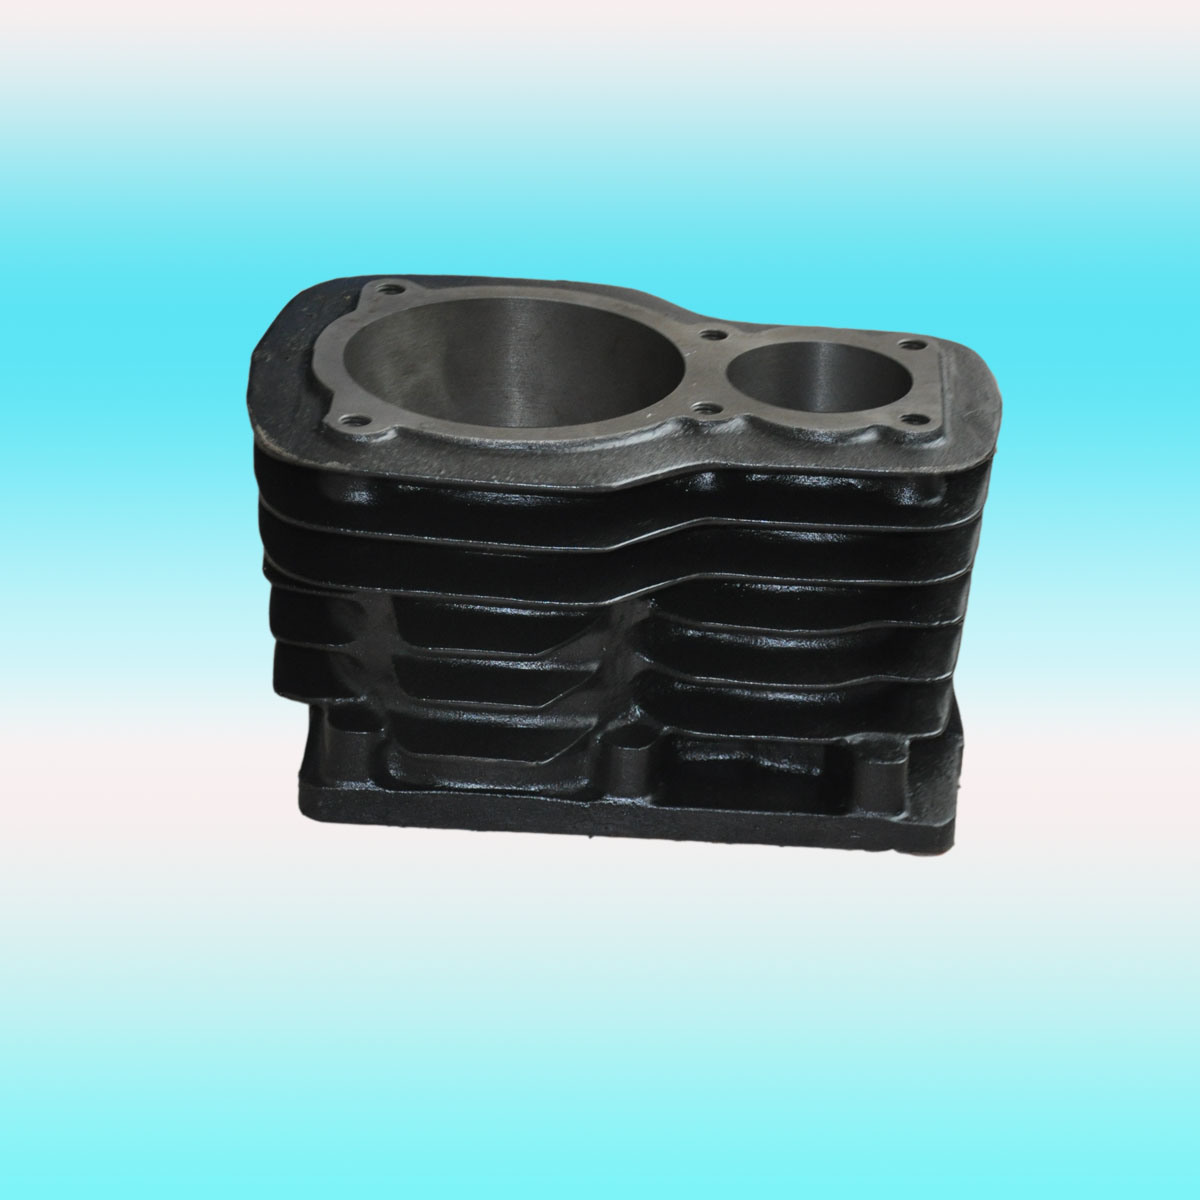 Cylinder Liner, Cylinder Sleeve, EPC, Gray Iron, Ductile Iron, ISO 9001: 2008, Awgt-006